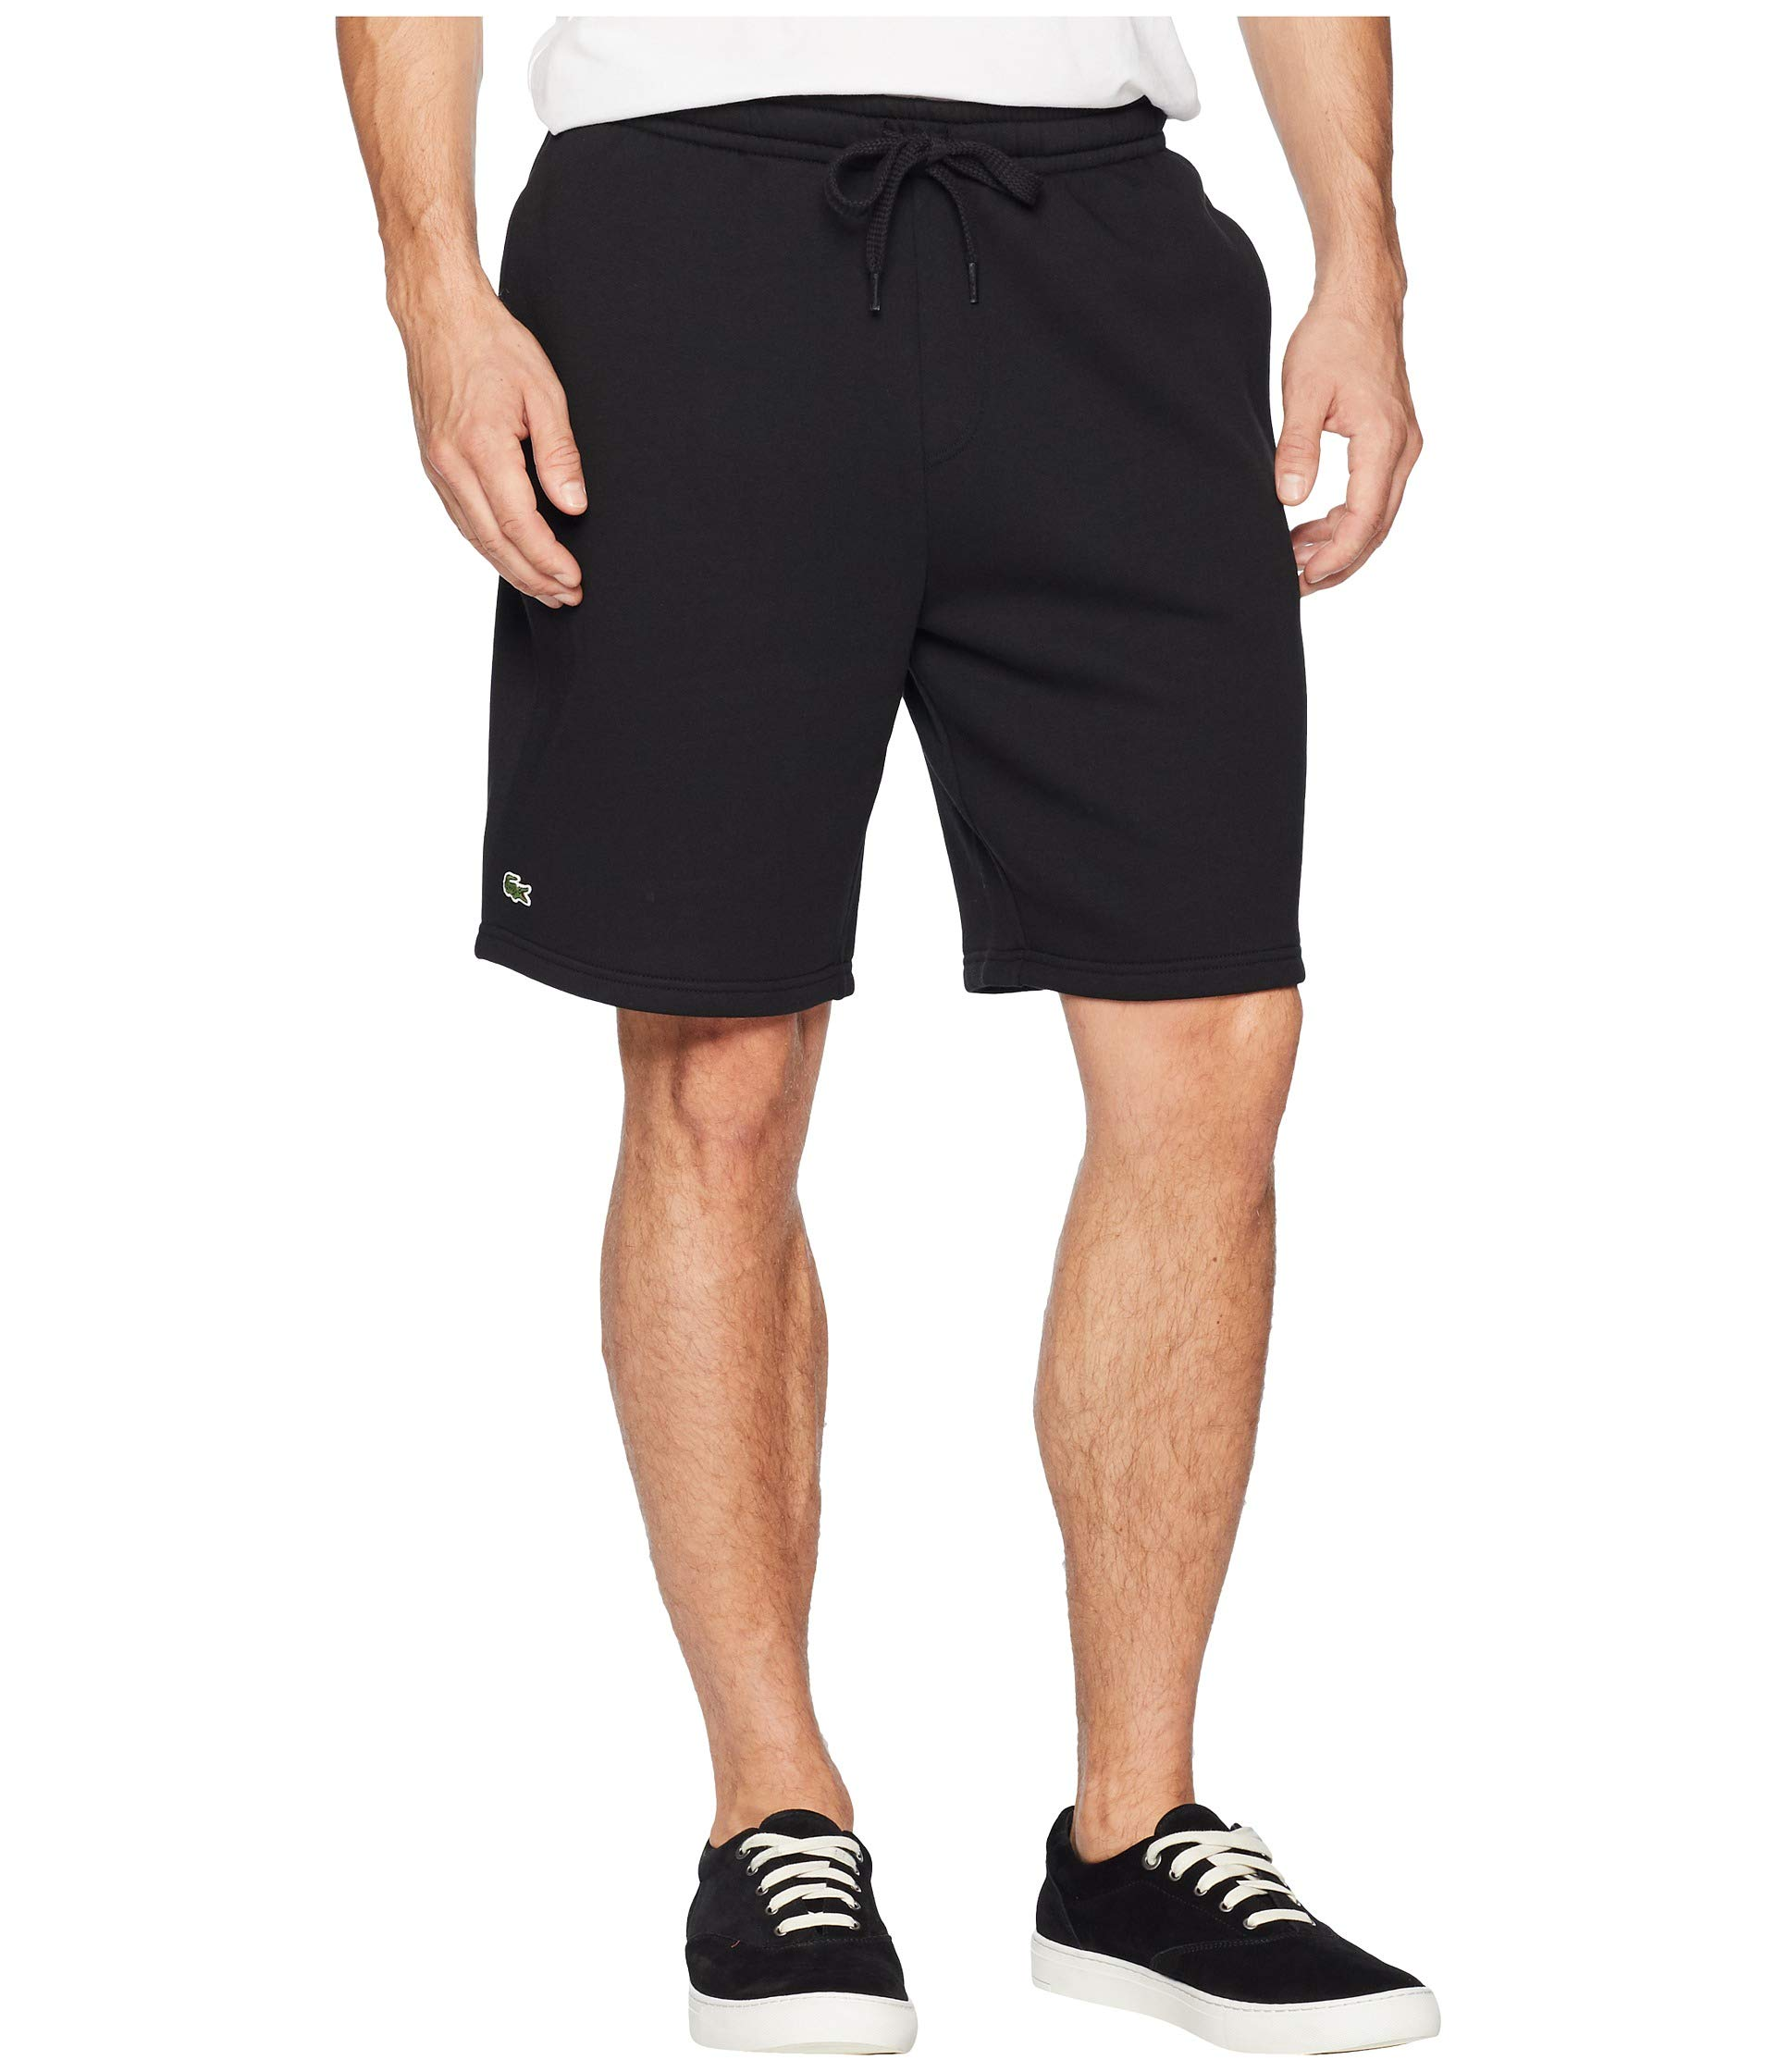 Lacoste Men's Sport Fleece Short, Black, Medium